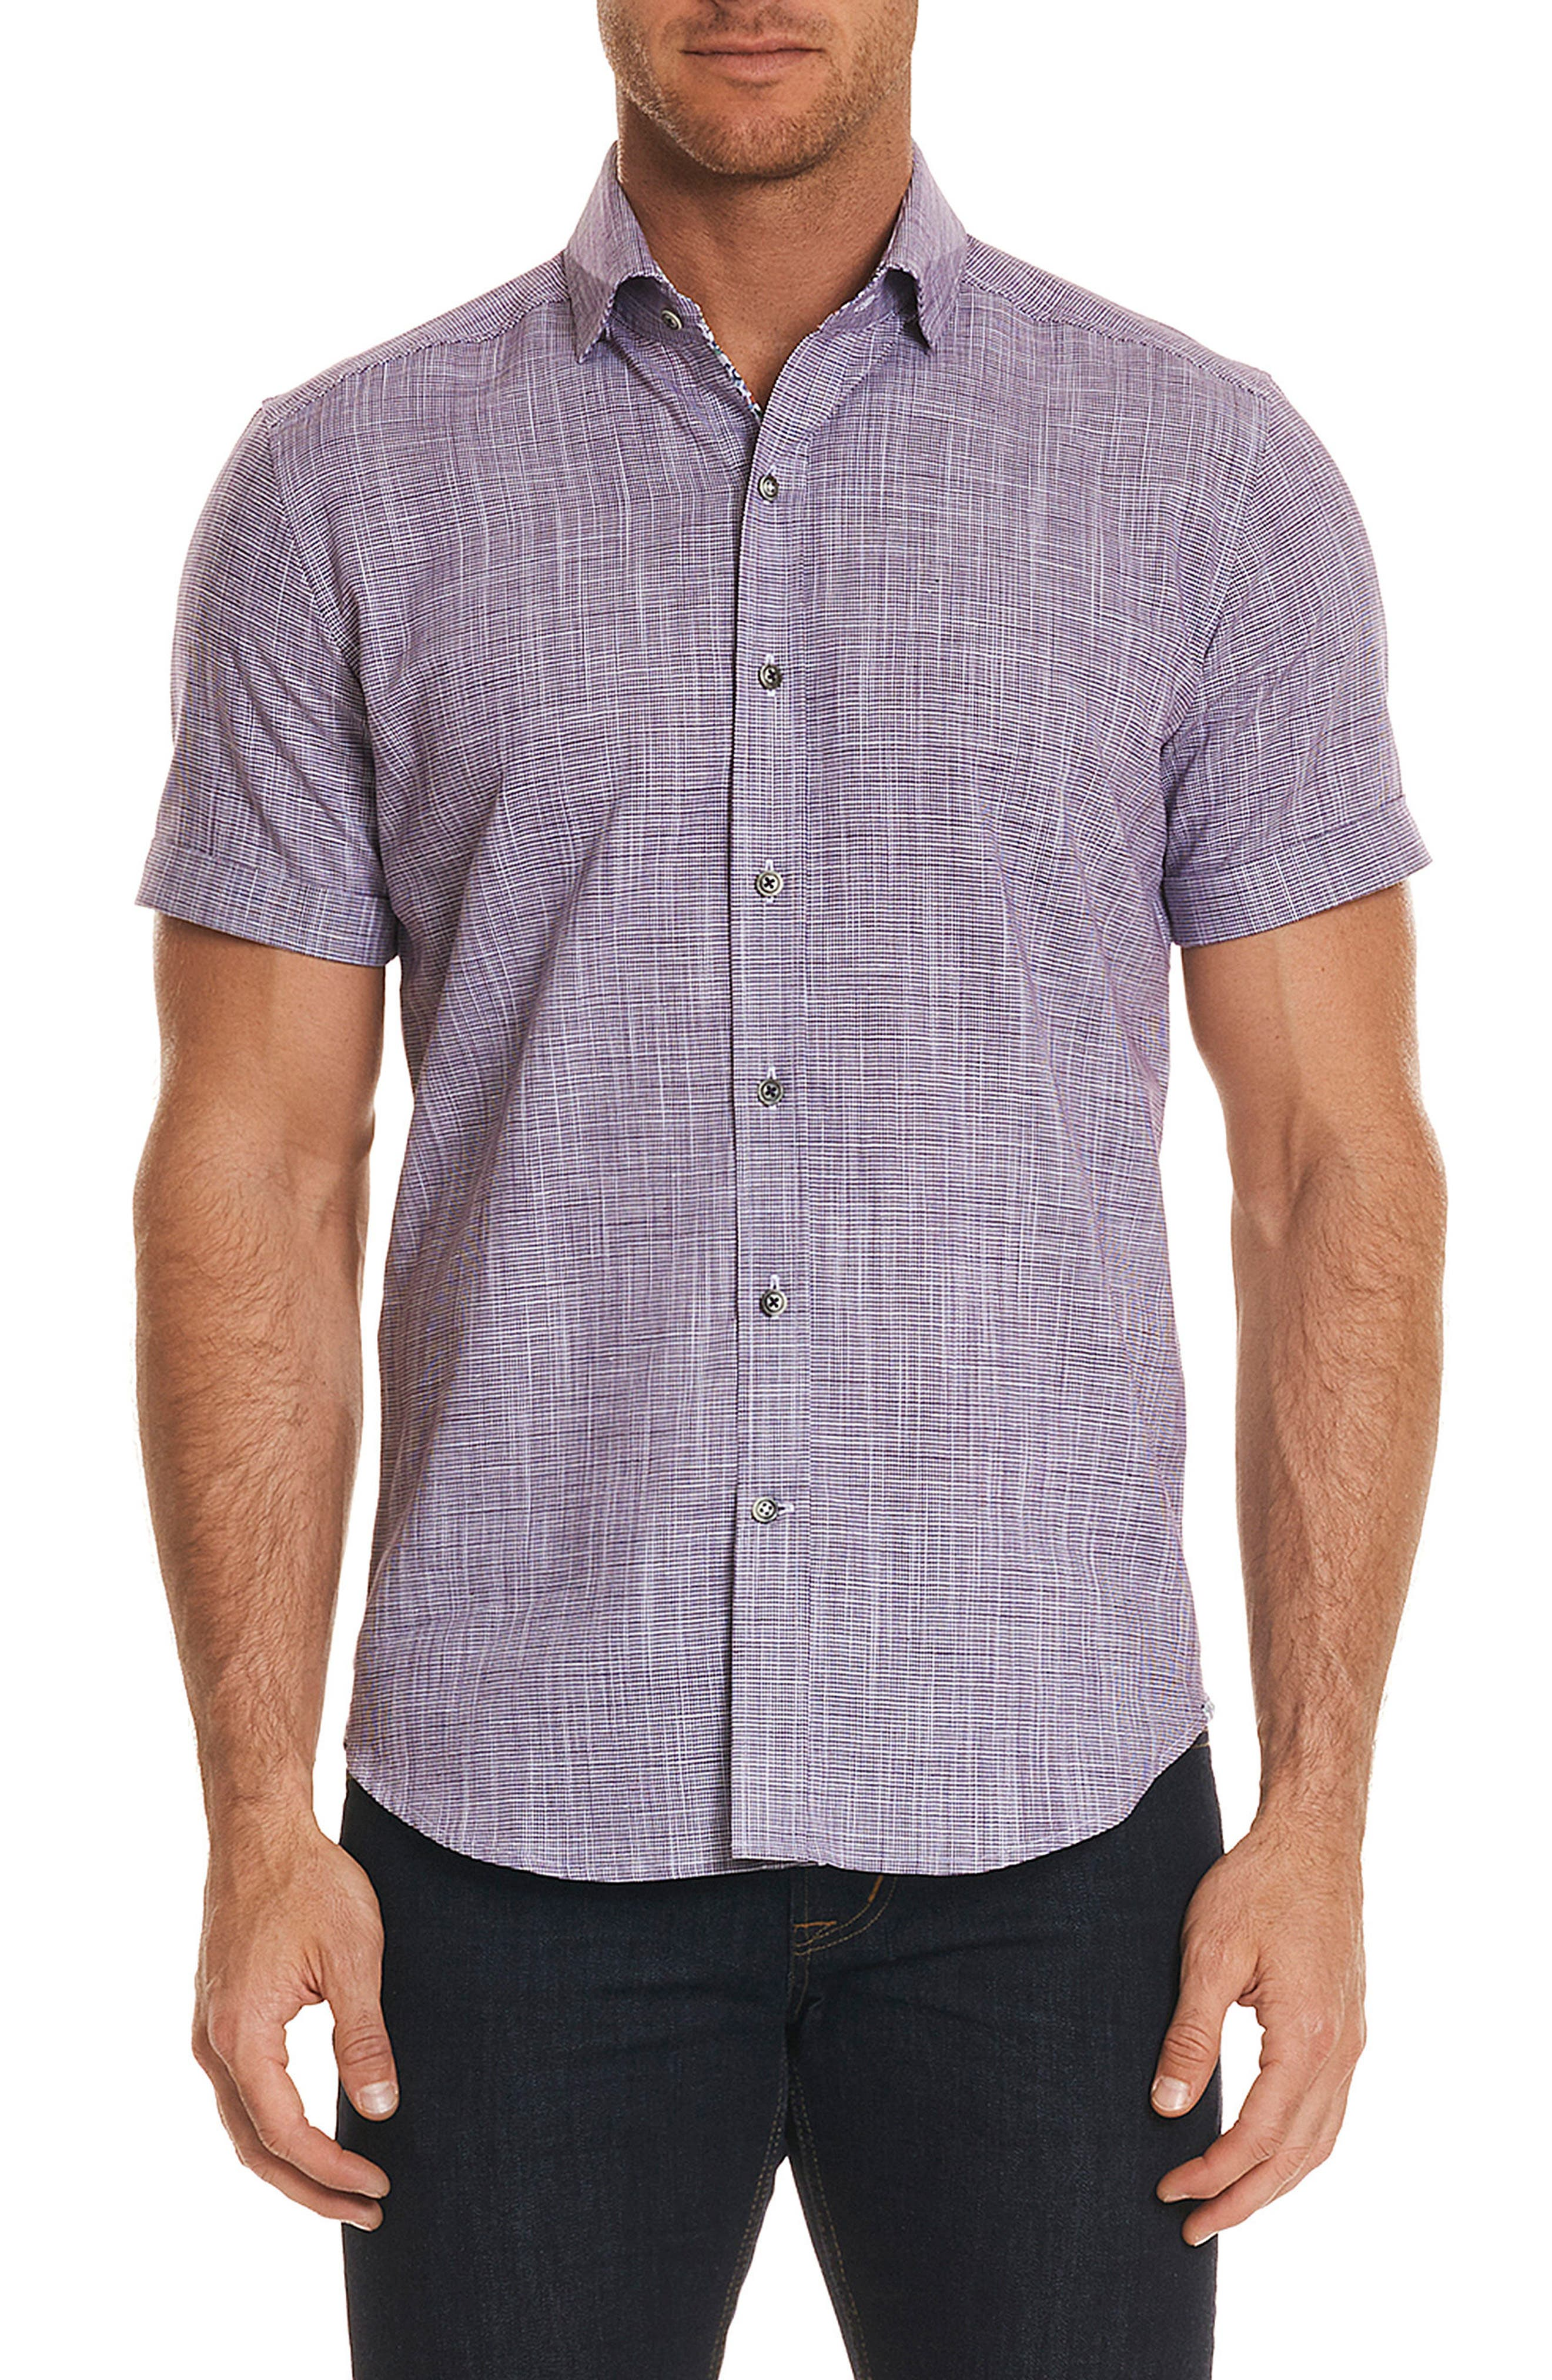 Isia Tailored Fit Sport Shirt,                         Main,                         color, PURPLE